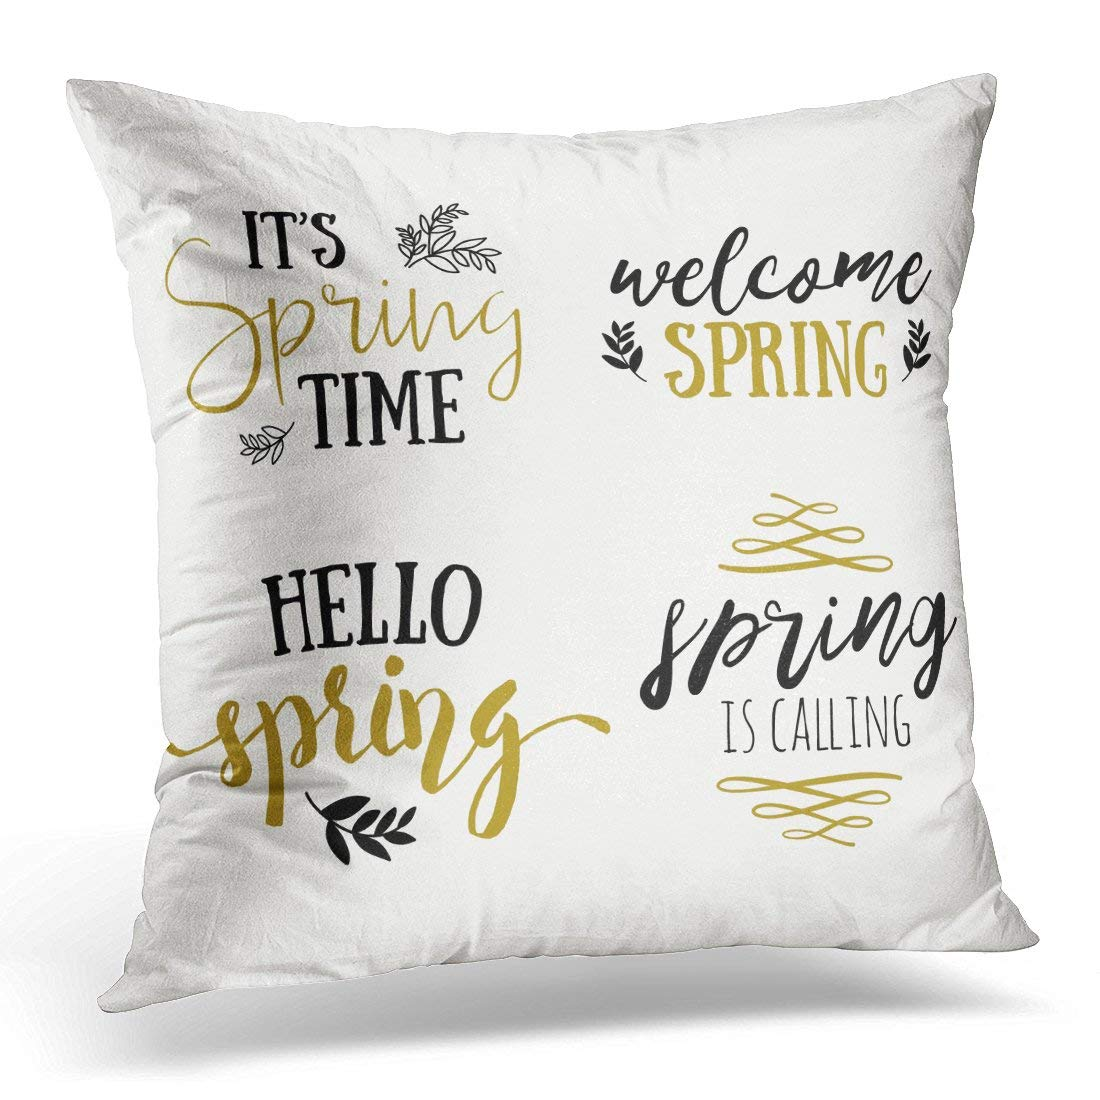 USART Hello It's Spring Time Lettering Special Sale in Gold Black and White Colors Coming Pillow Case Pillow Cover 18x18 inch